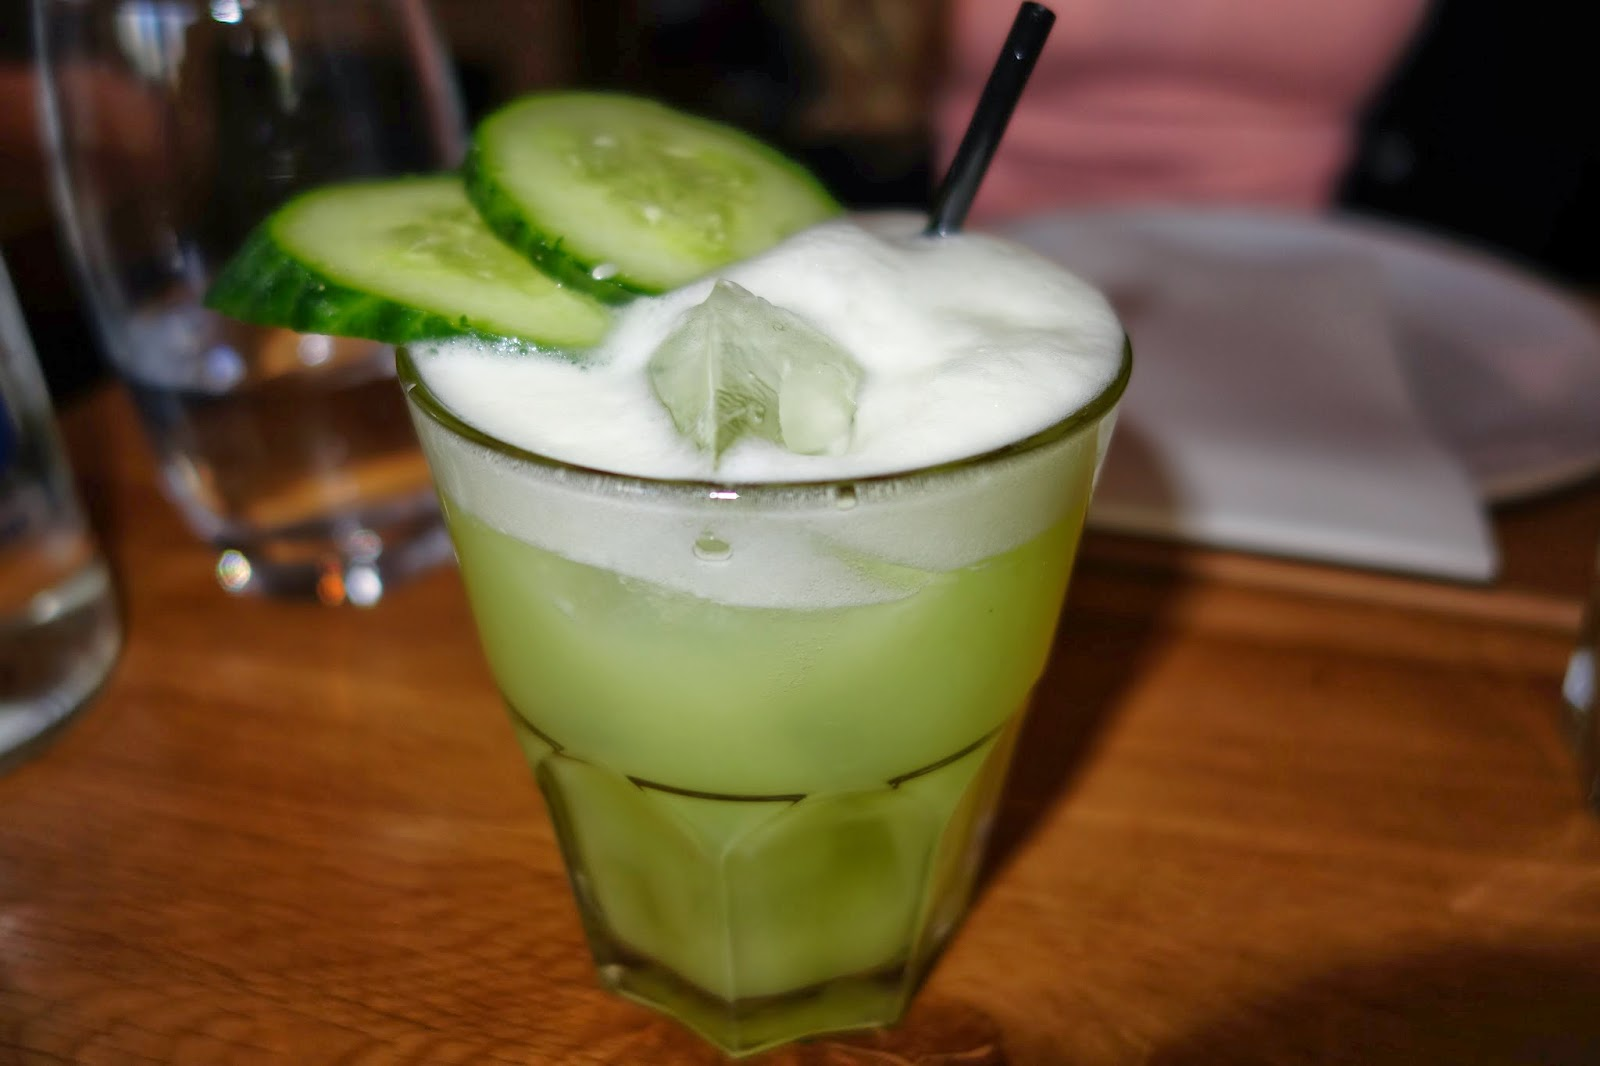 A green drink